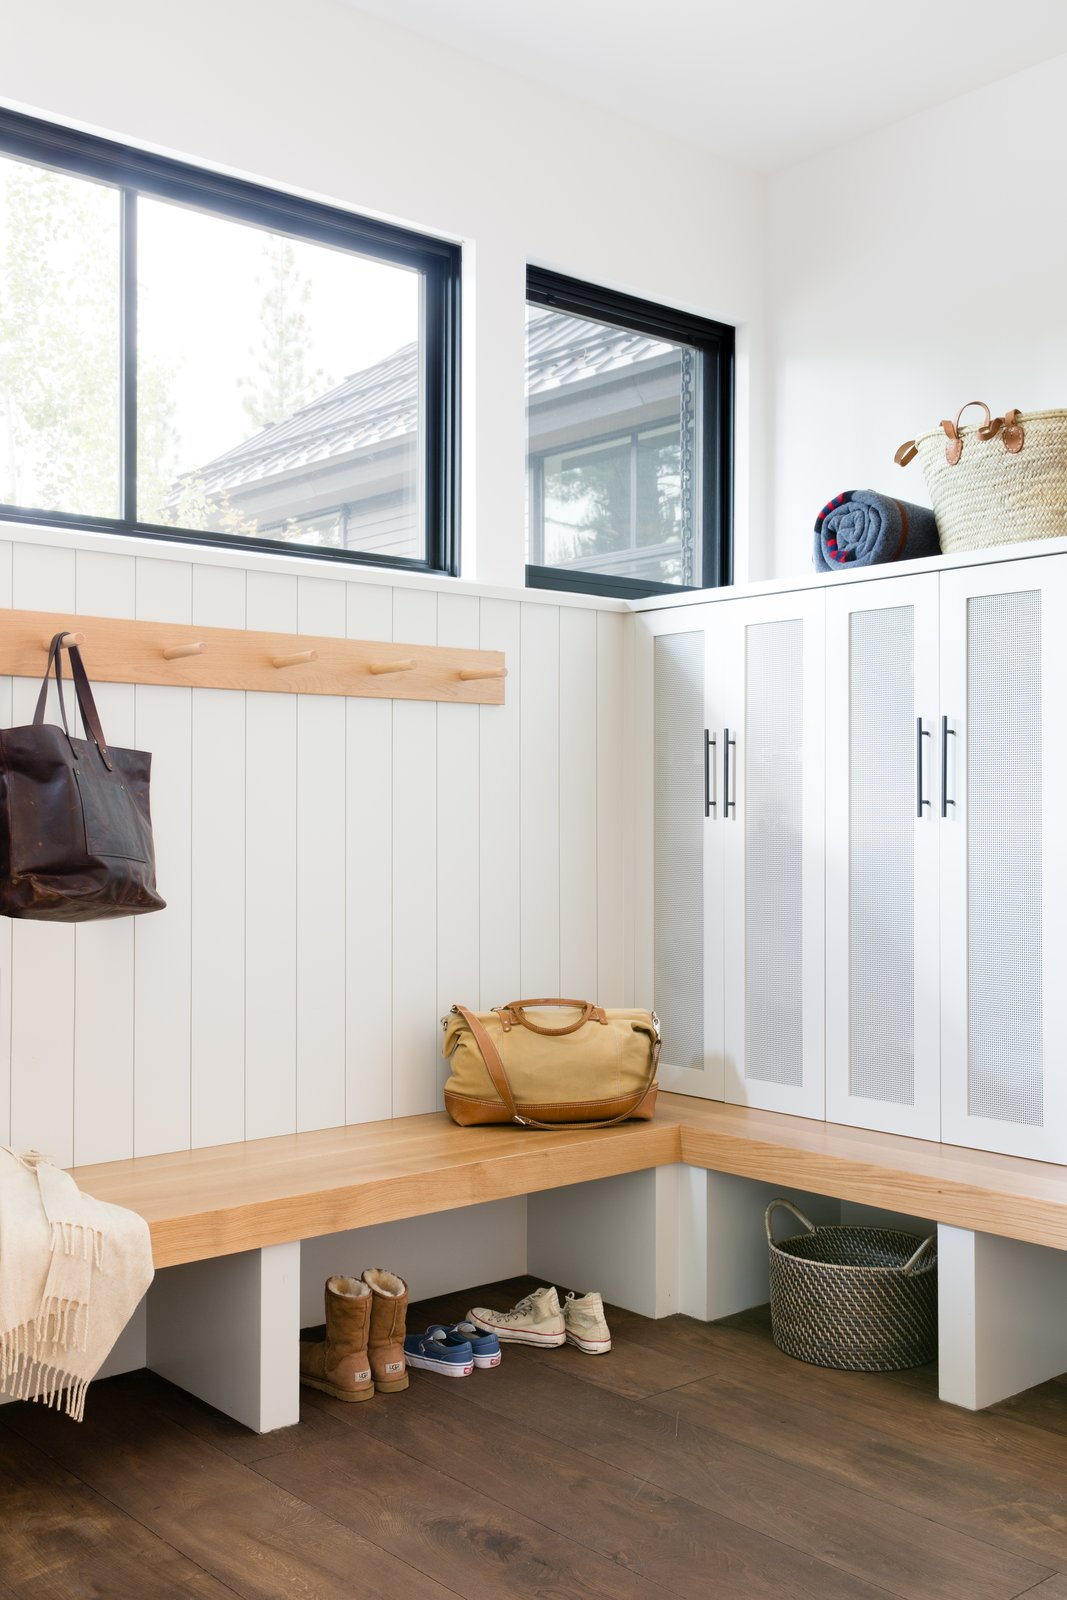 Storage Room and Cabinet Storage Type The mudroom is an essential stop for the family after skiing and other outdoor excursions. Lockers provide neat storage for all their gear.  Photo 10 of 20 in A Sleek Lake Tahoe Retreat Shows Off an Impressive Art Collection